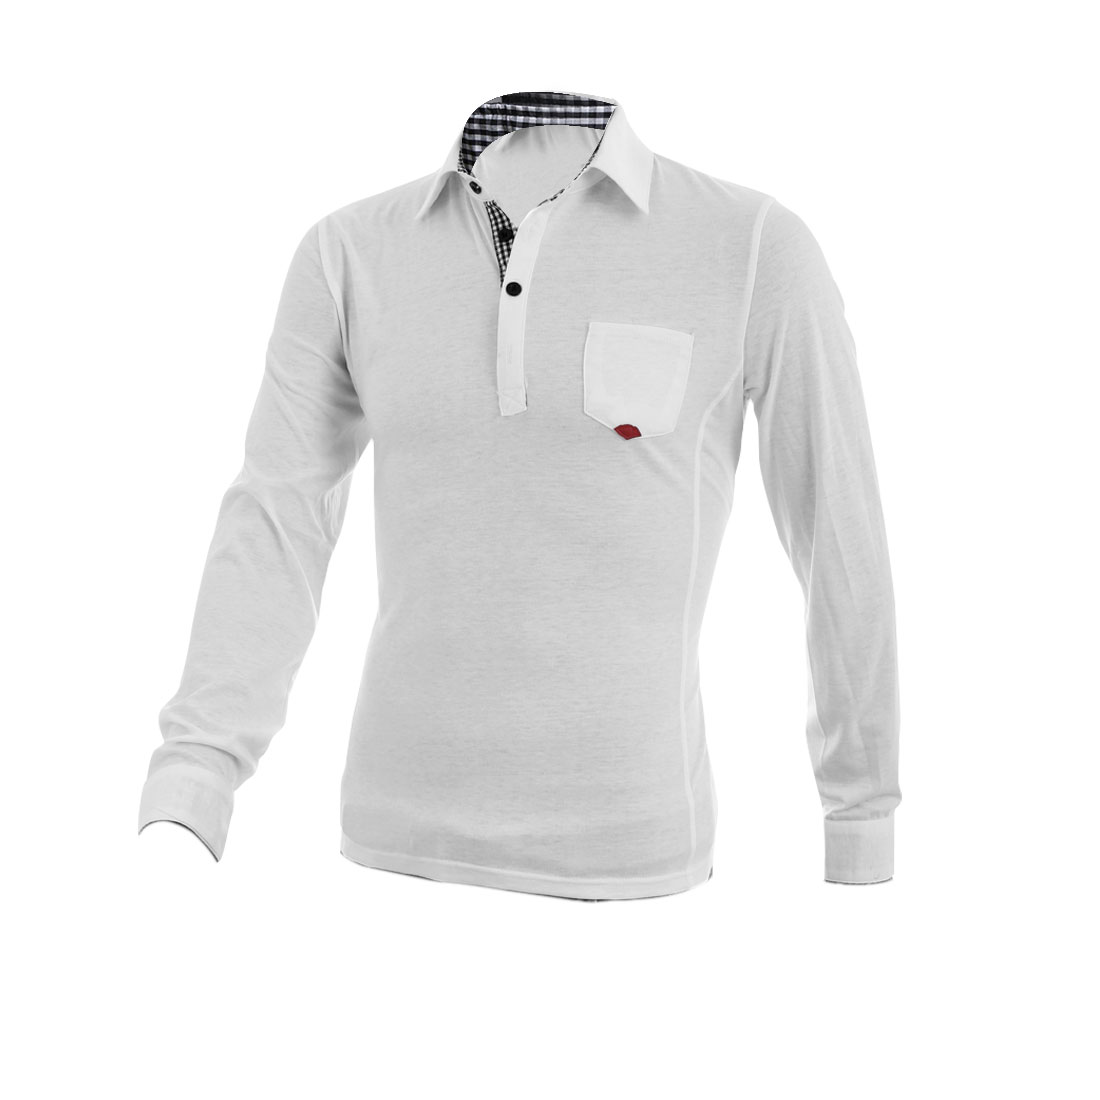 Men Chic Point Collar Long Sleeve Buttoned Cuff White Polo Shirt M